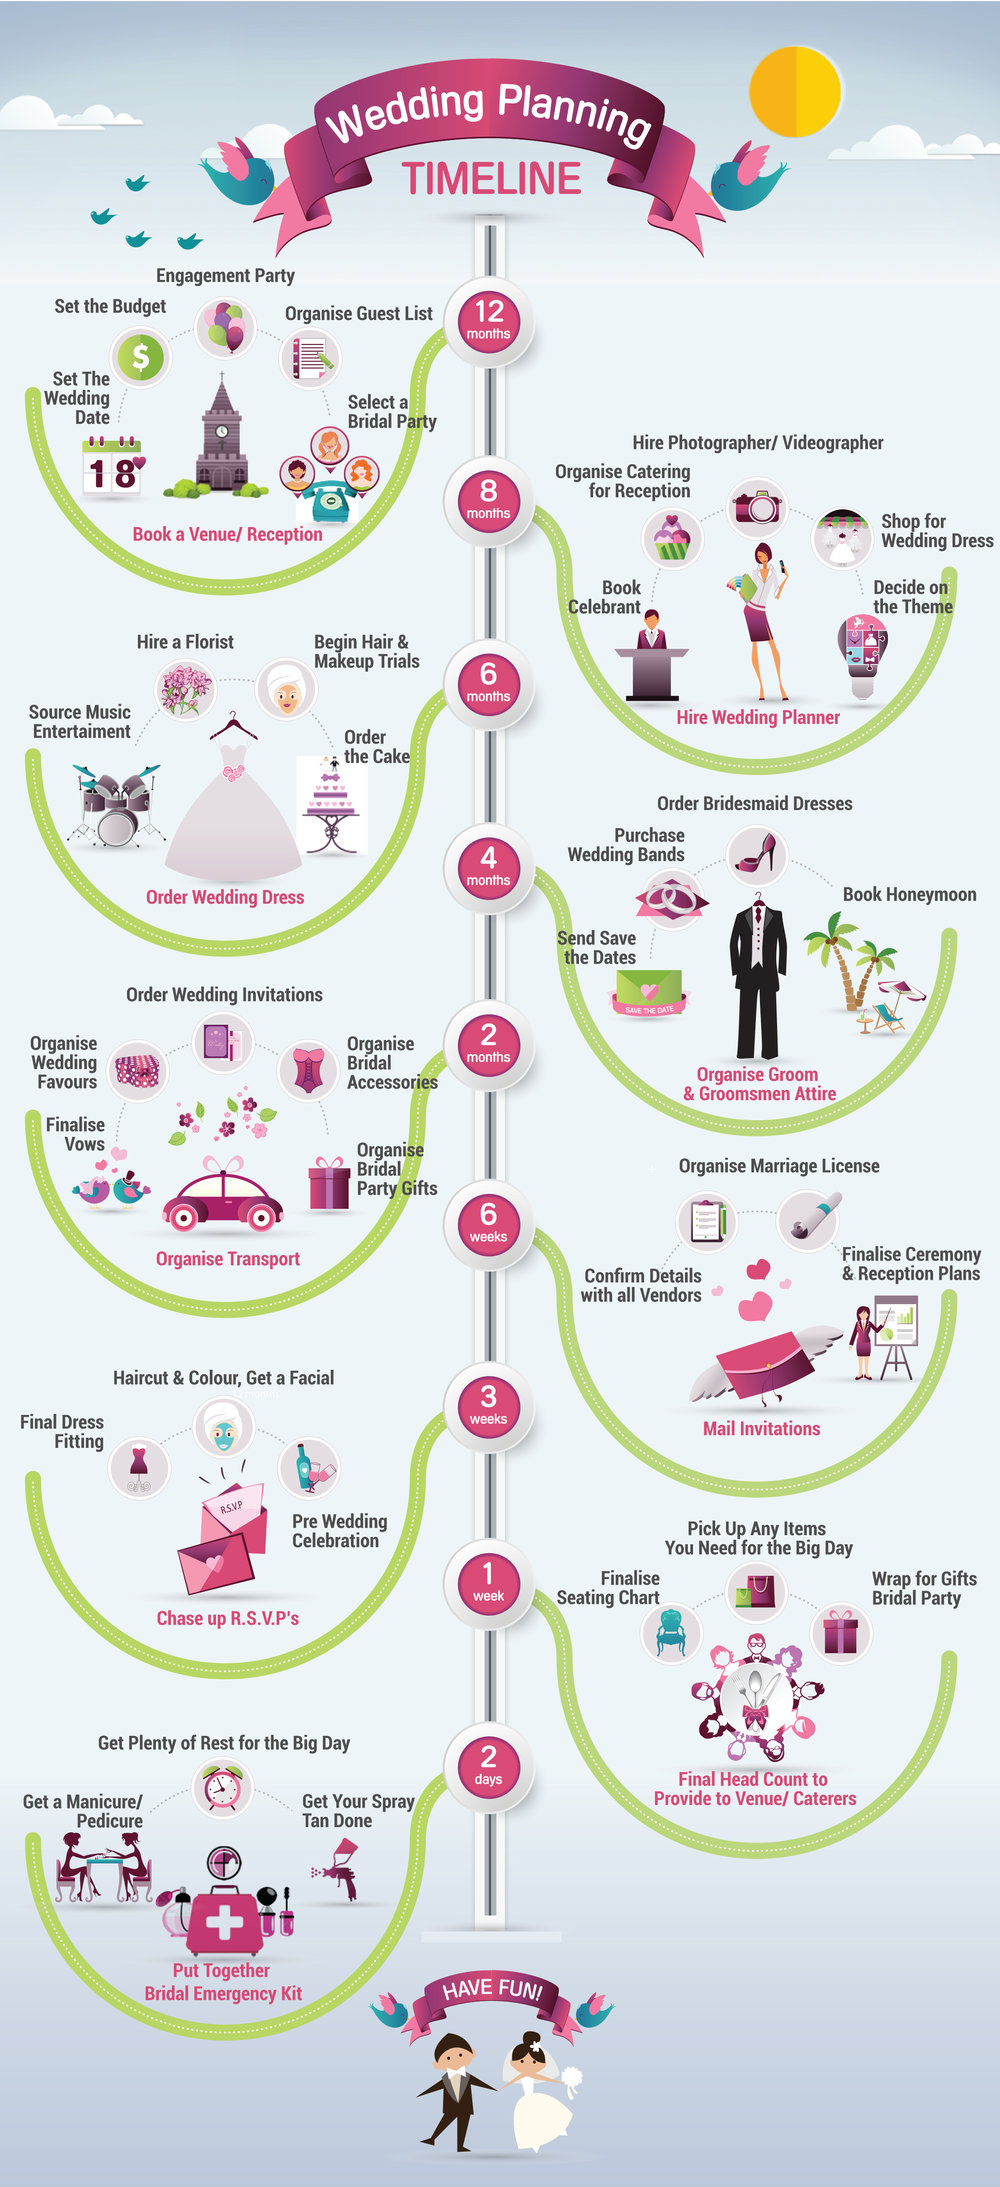 wedding-planning-timeline-in-43-steps-high-res.jpg